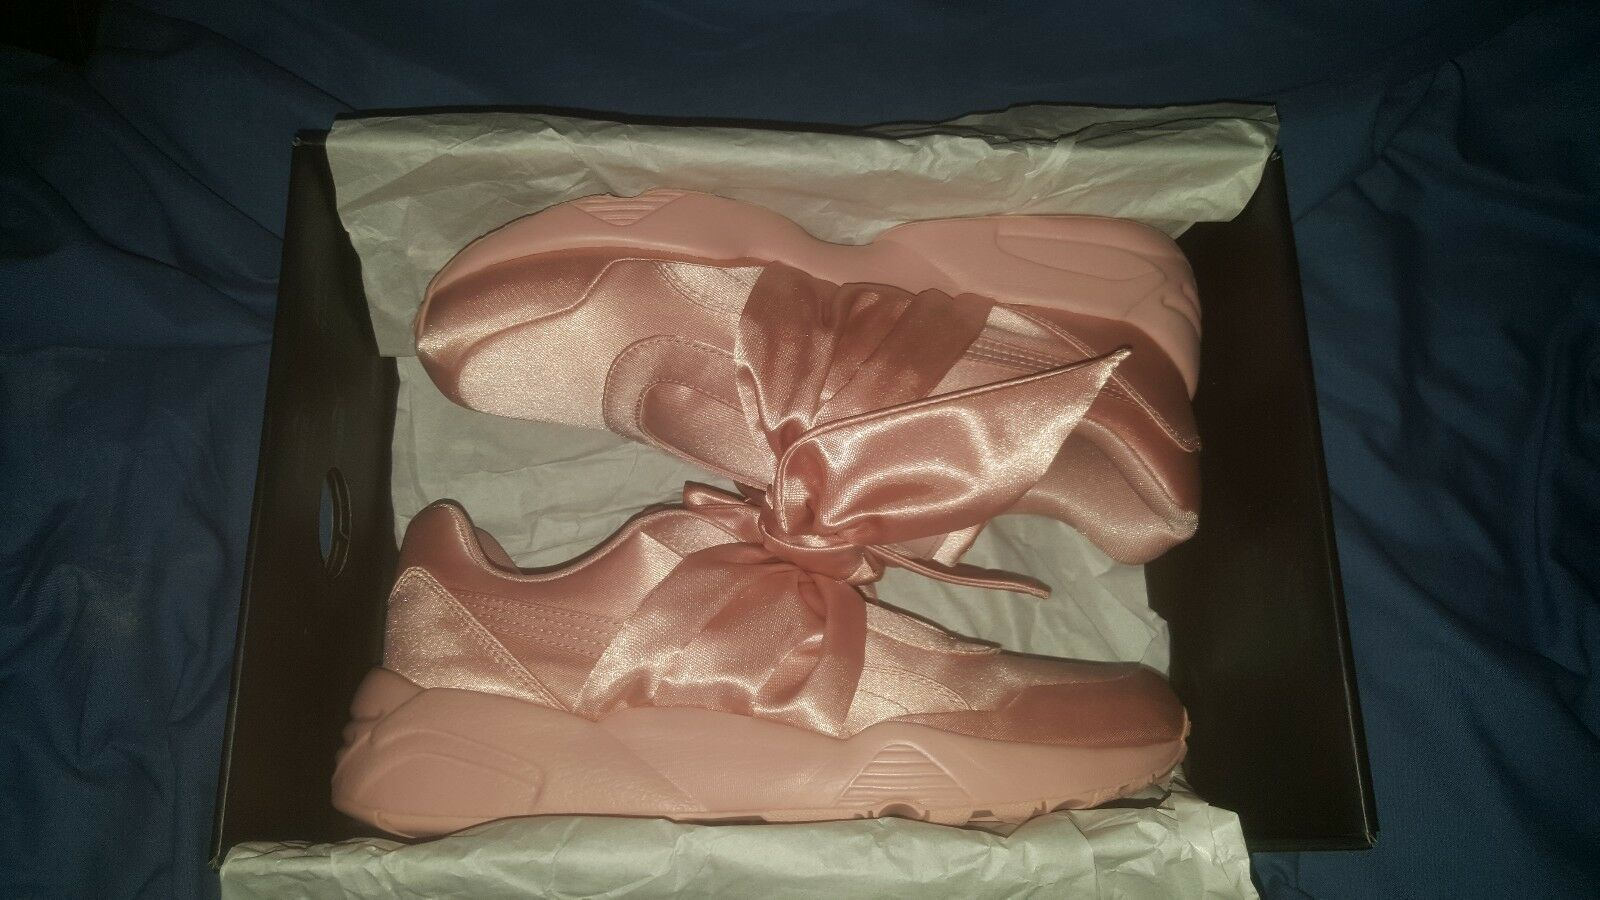 PUMA FENTY PINK SATIN BOW TRAINERS SIZE BRAND NEW IN BOX